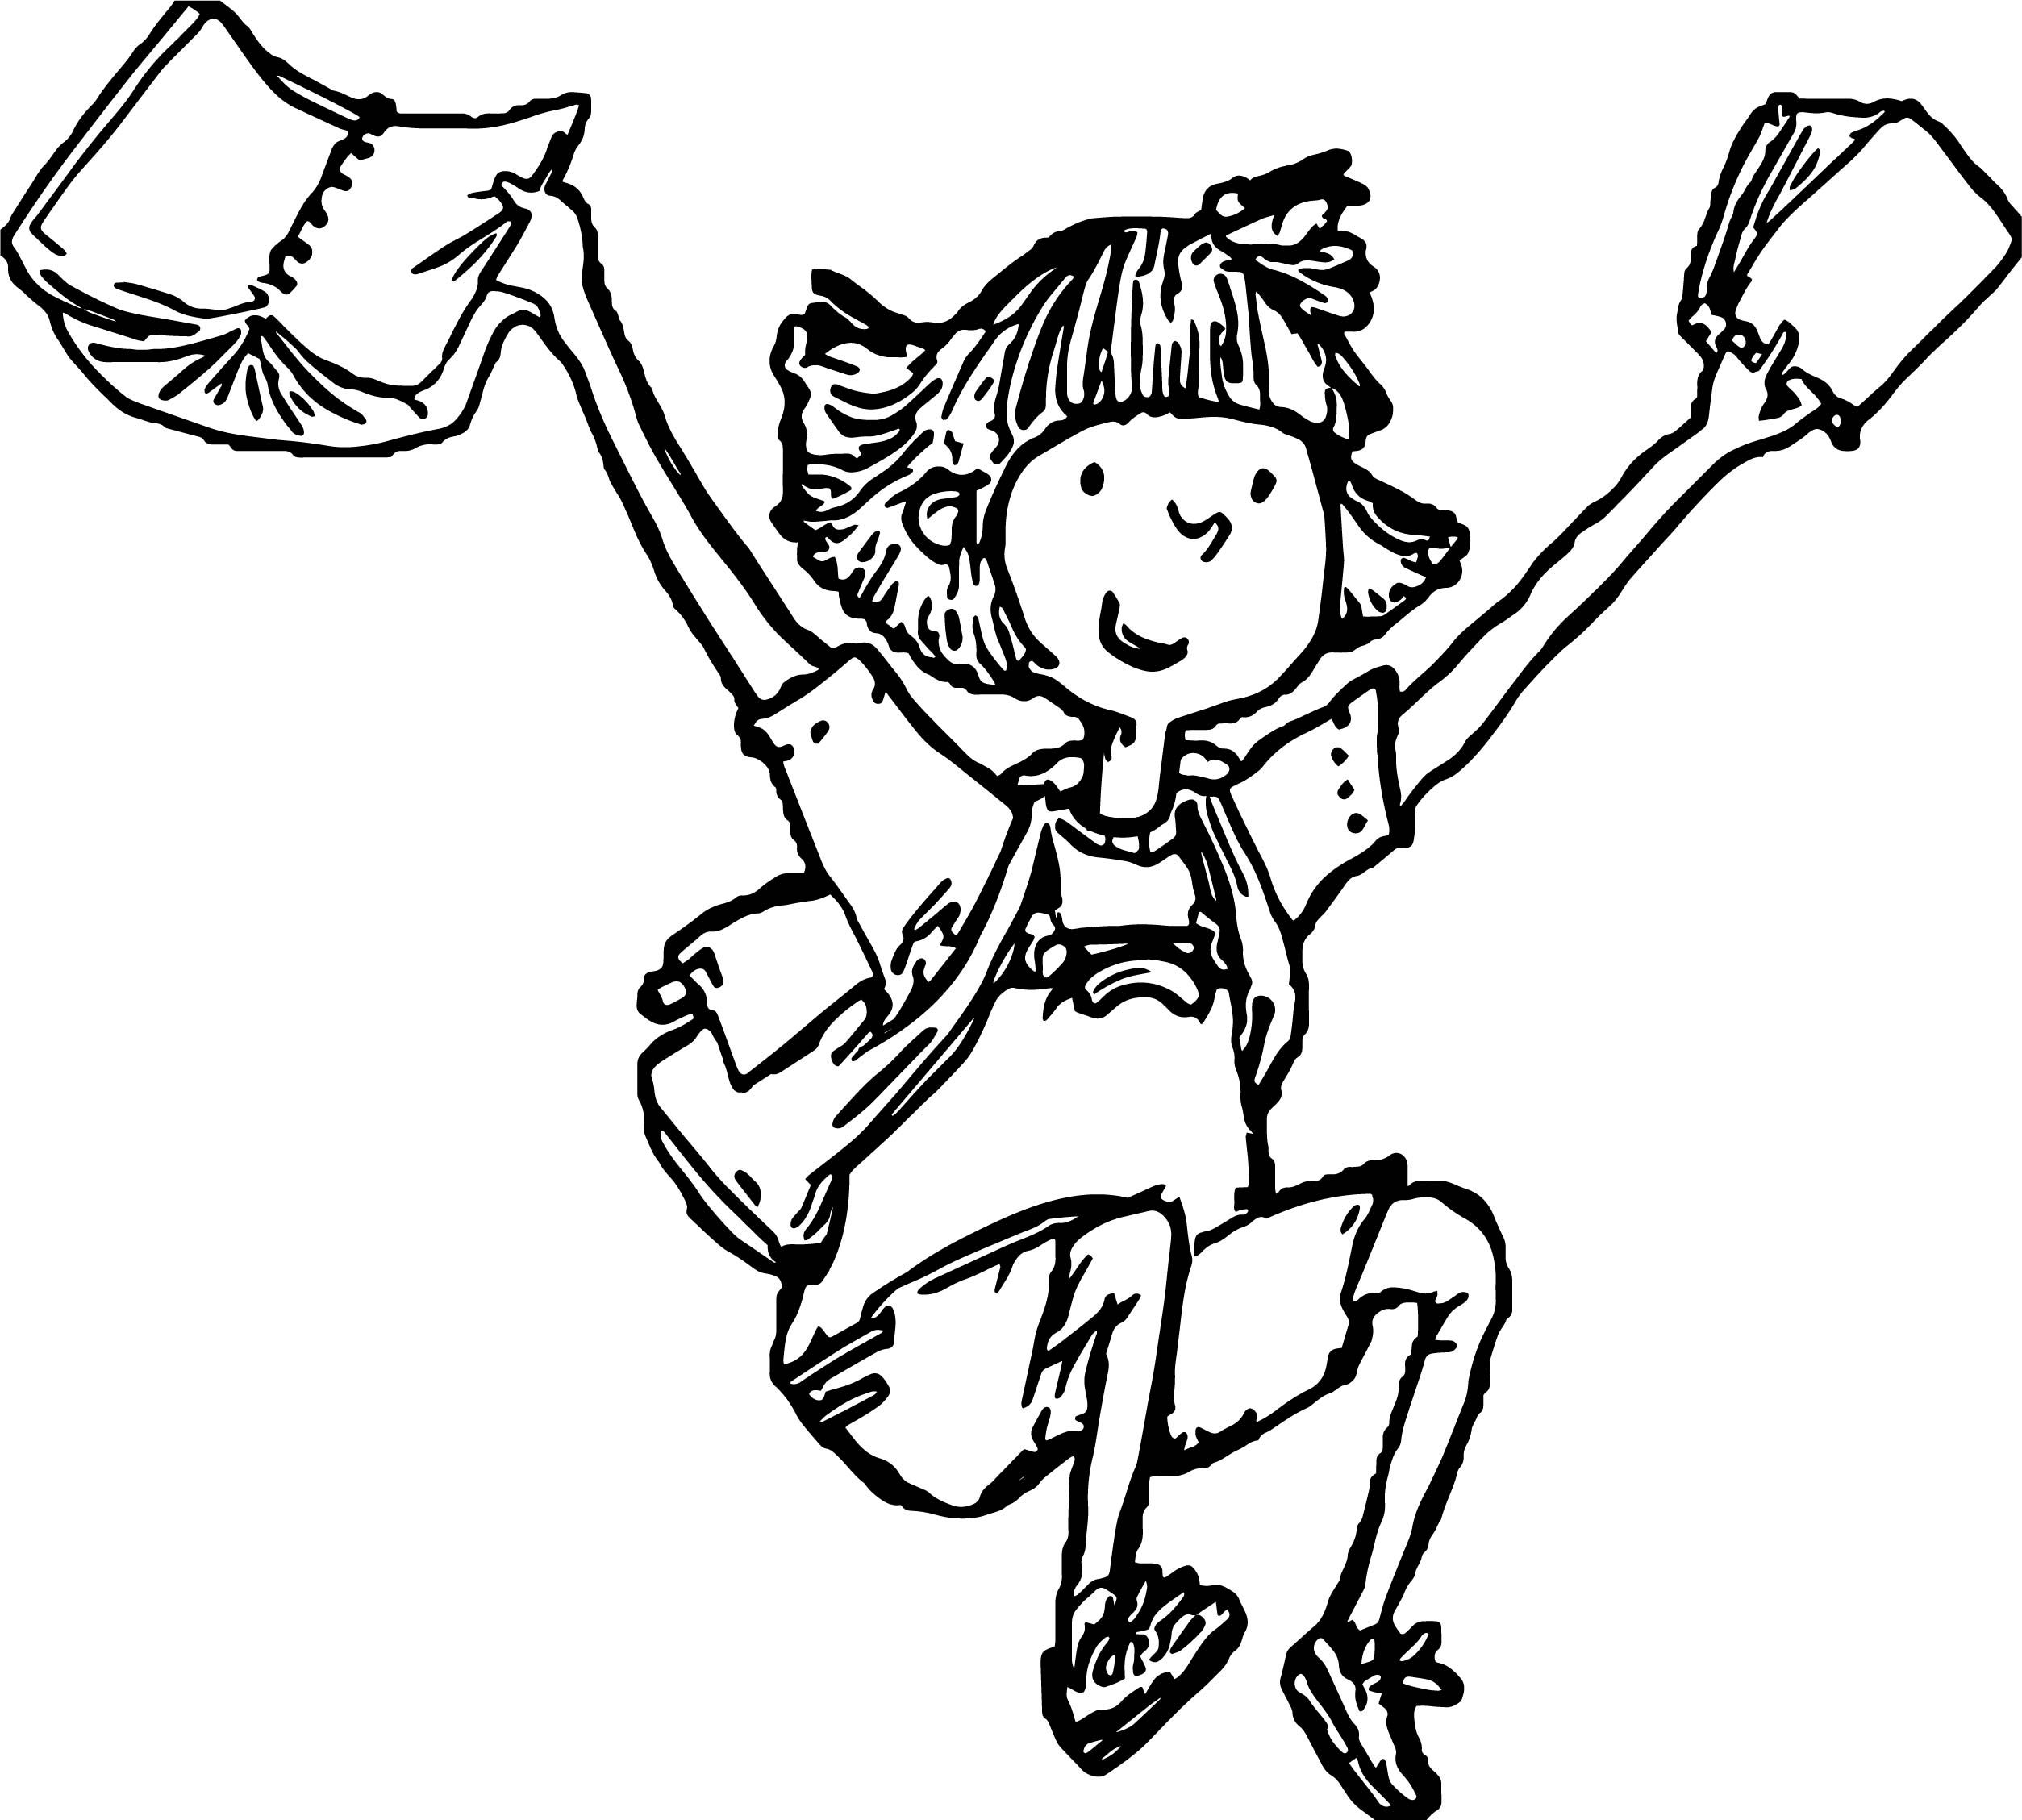 Awesome Amelia Bedelia Finish School Coloring Page School Coloring Pages Santa Coloring Pages Dog Coloring Page